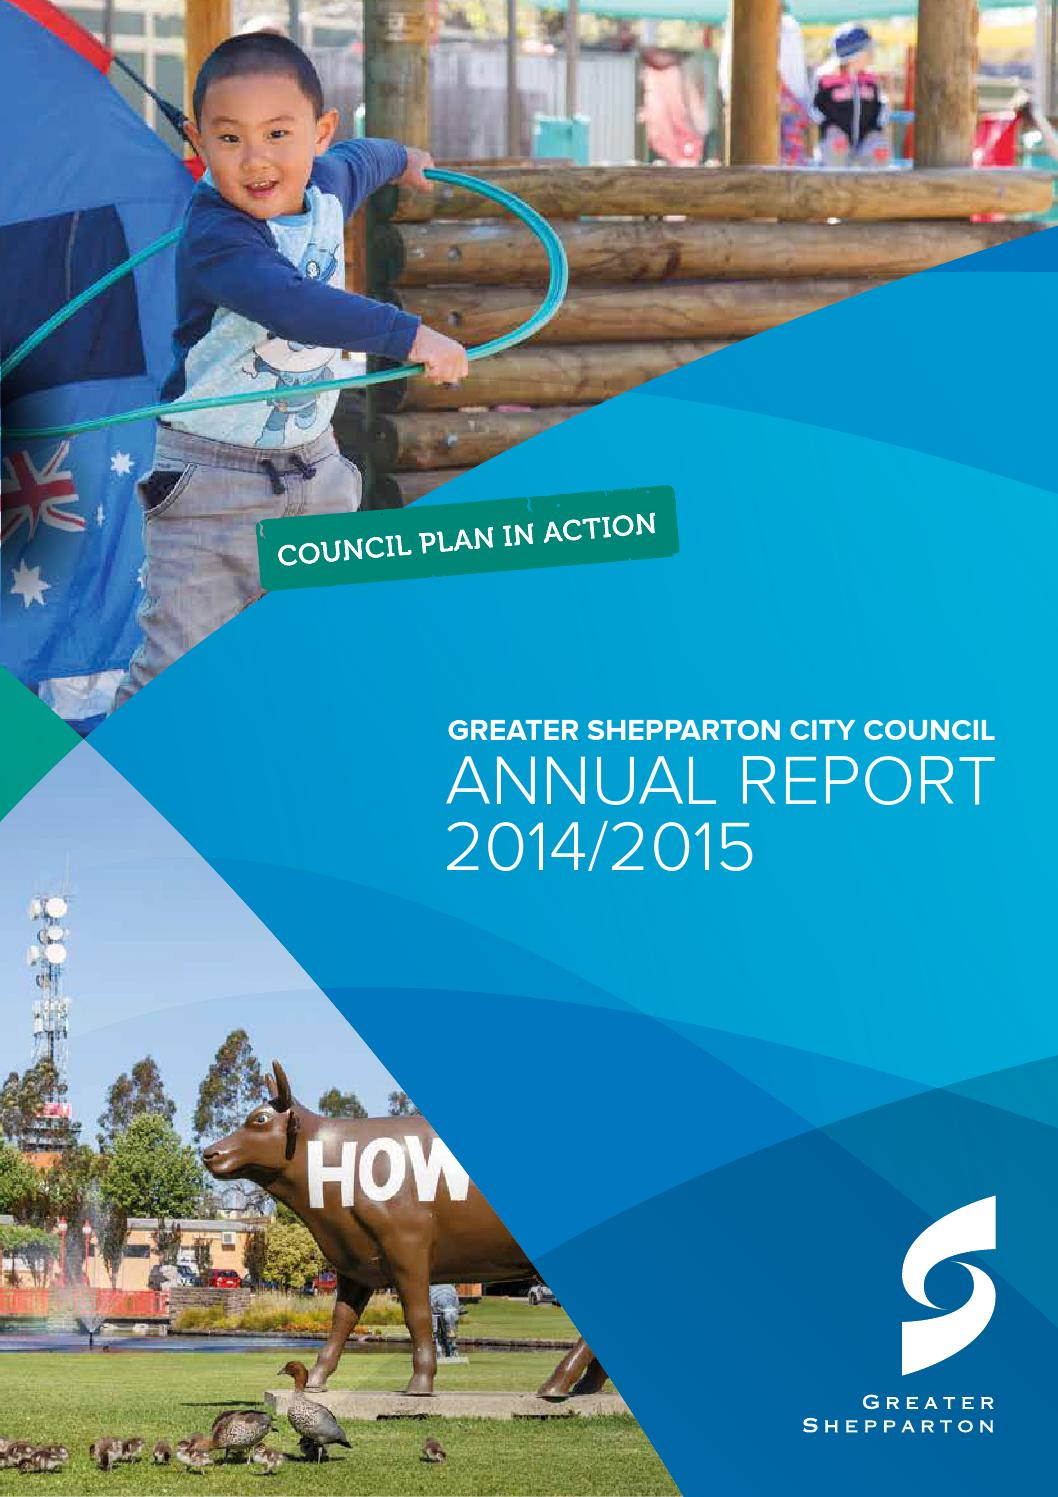 Kinder Garden: Greater Shepparton City Council Annual Report 2014/15 By